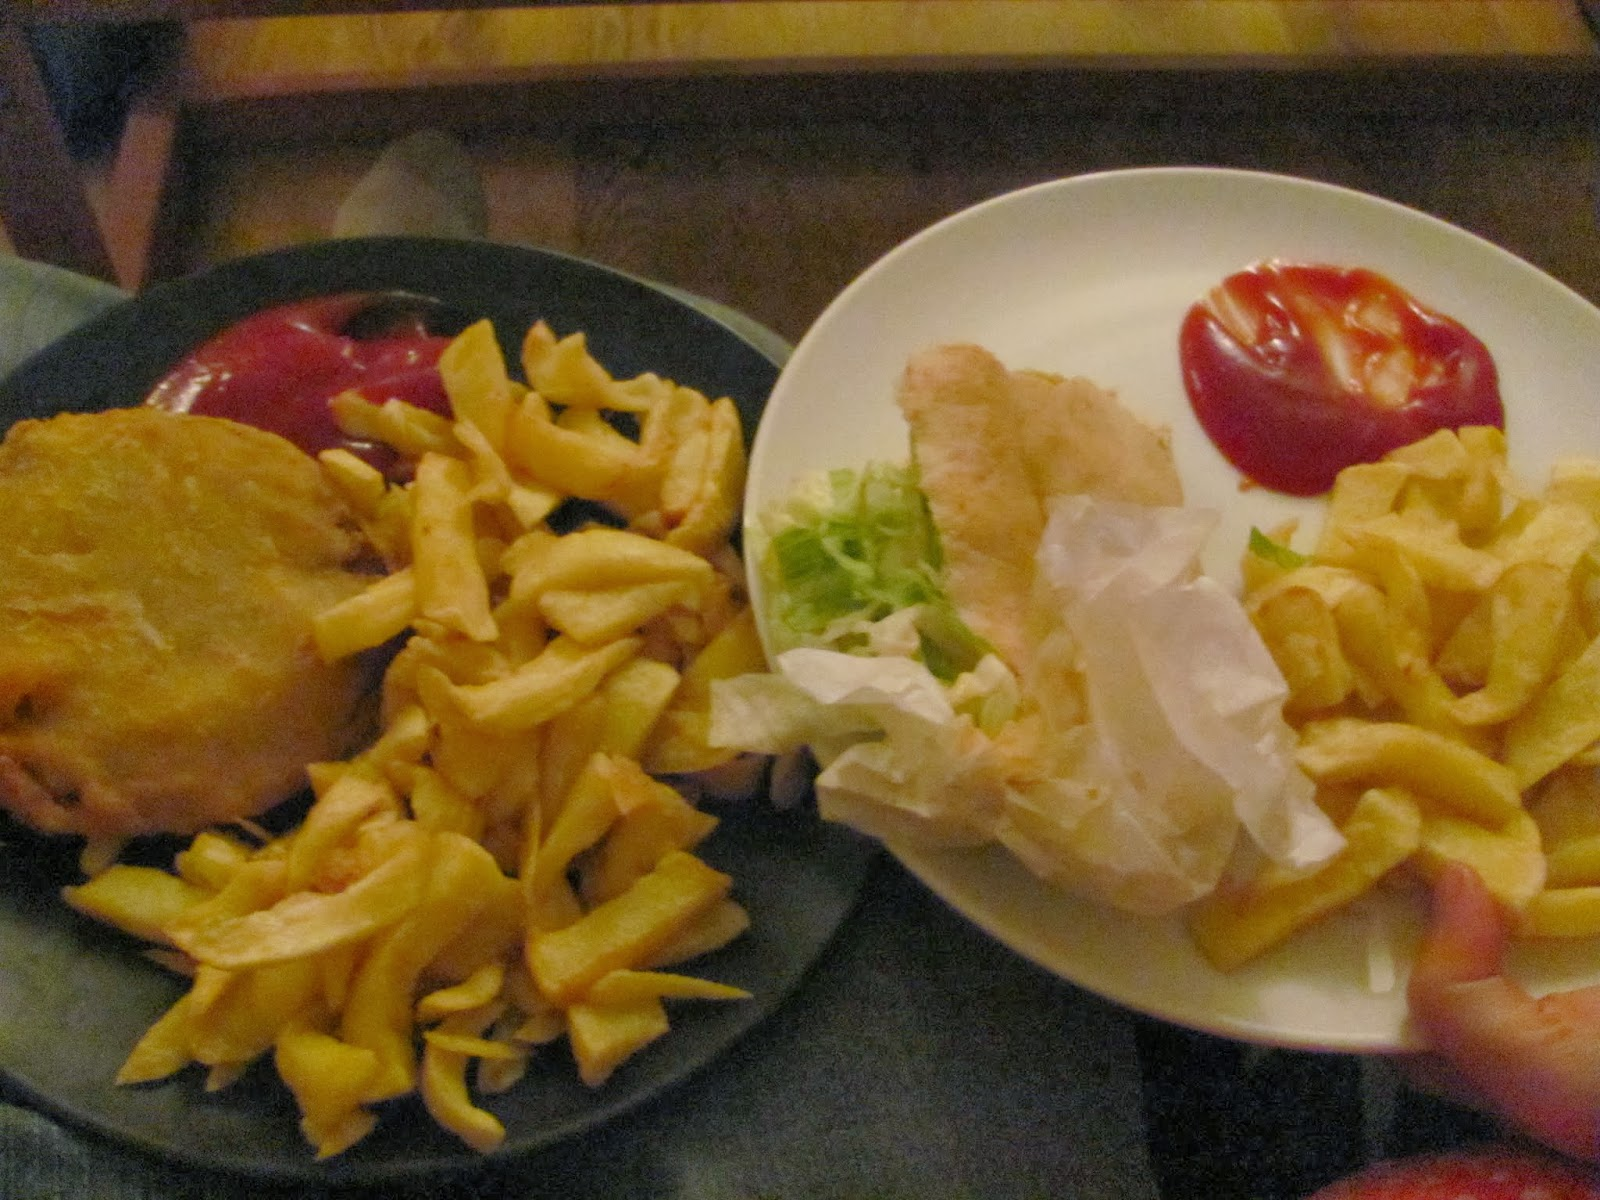 A battered, fried hamburger and a veggie falafel with chips